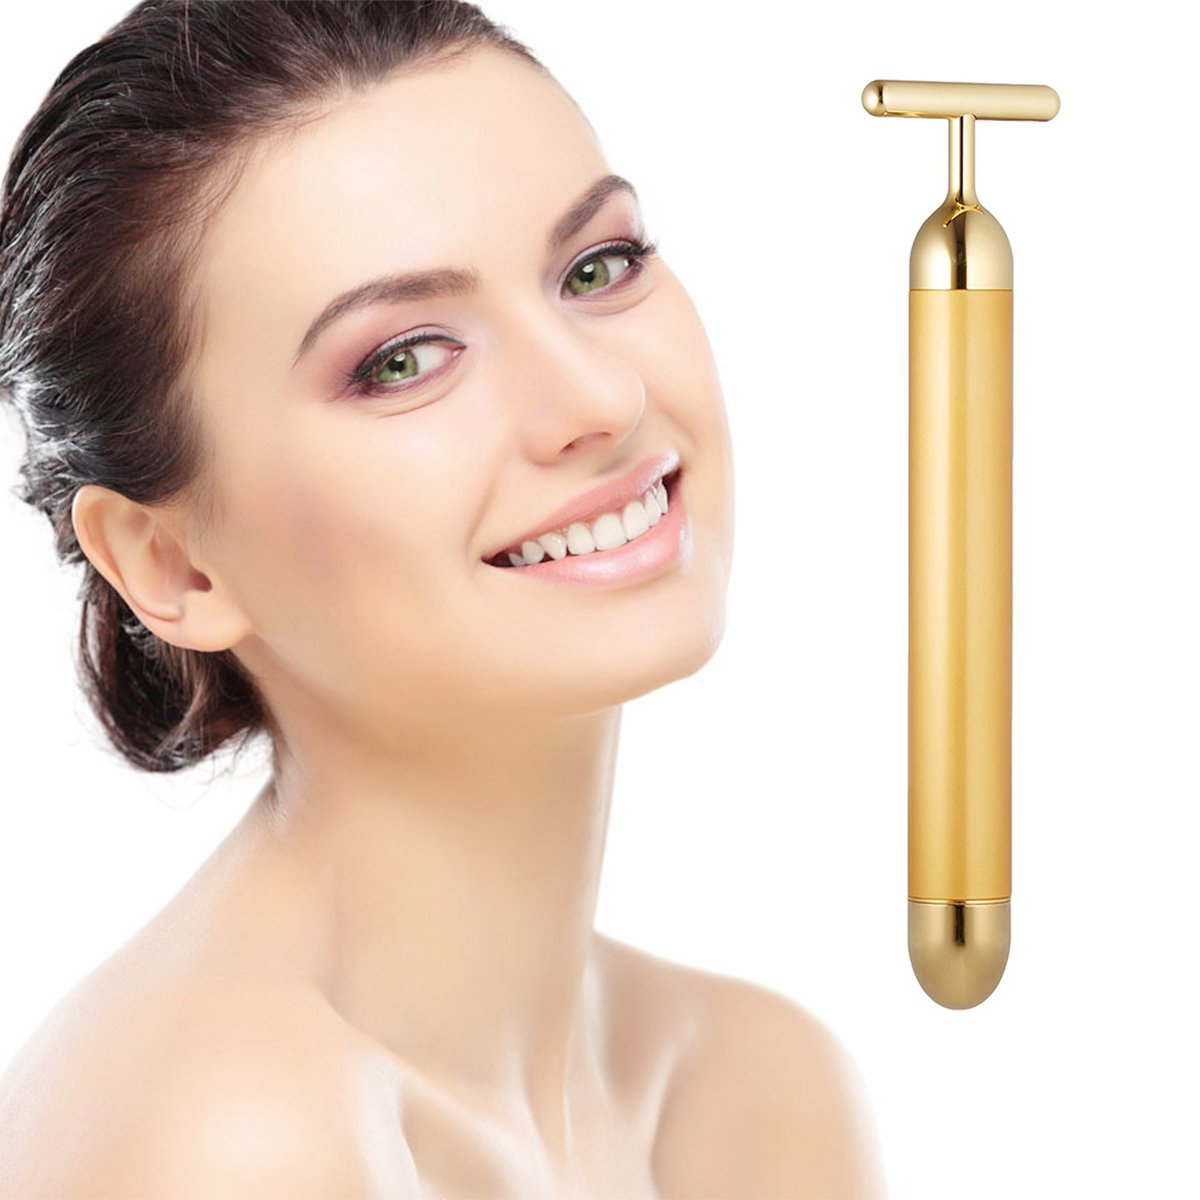 Beauty Bar 24k Golden Pulse Facial Massager, T-Shape Electric Sign Face Massage Tools for Sensitive Skin Face Pull Tight Firming Lift by DANGSHAN